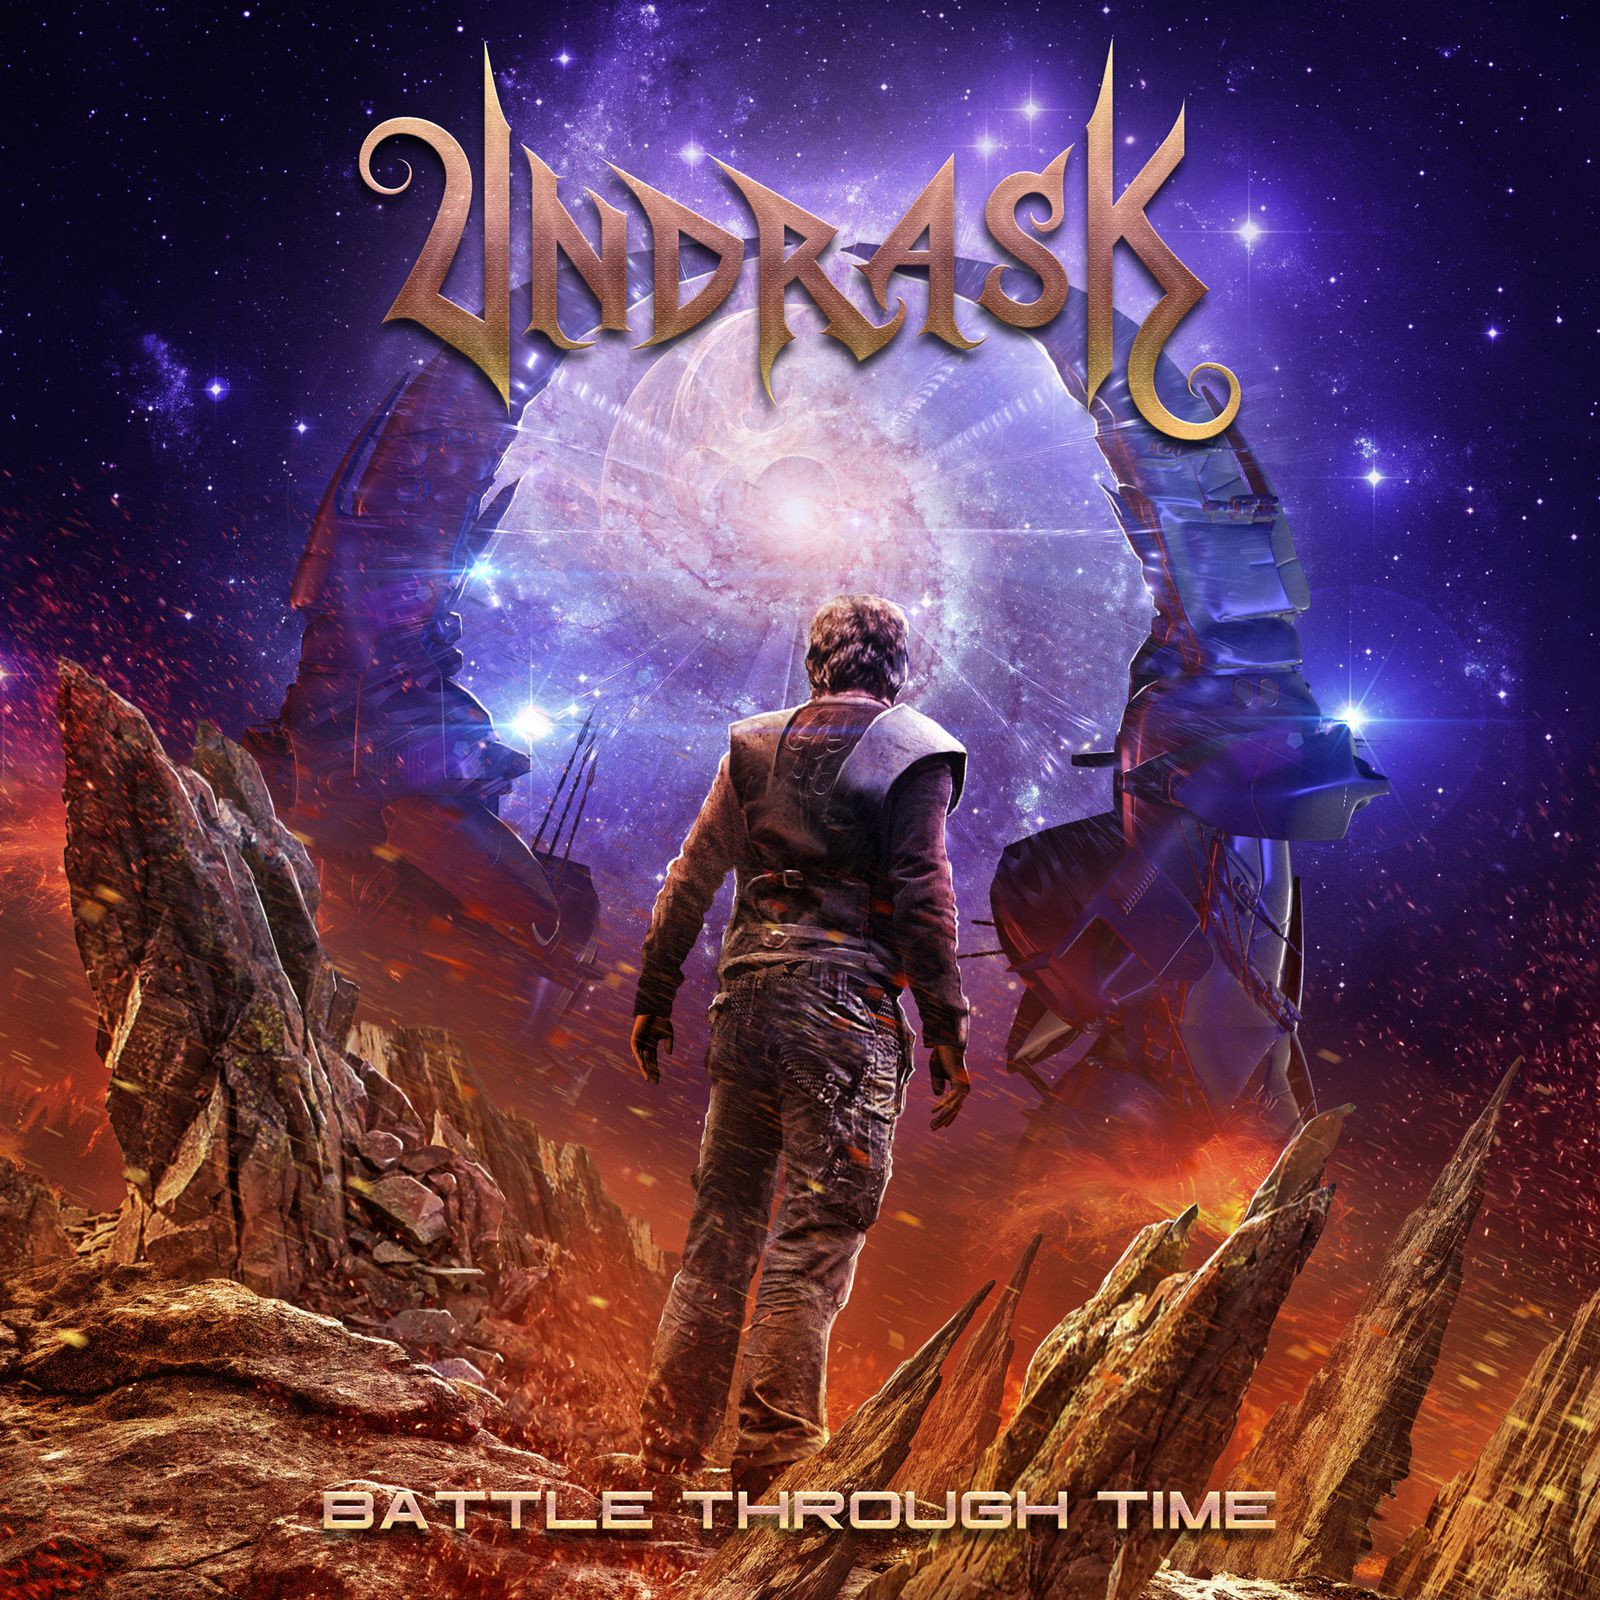 CD review UNDRASK &quot&#x3B;Battle Through Time&quot&#x3B;